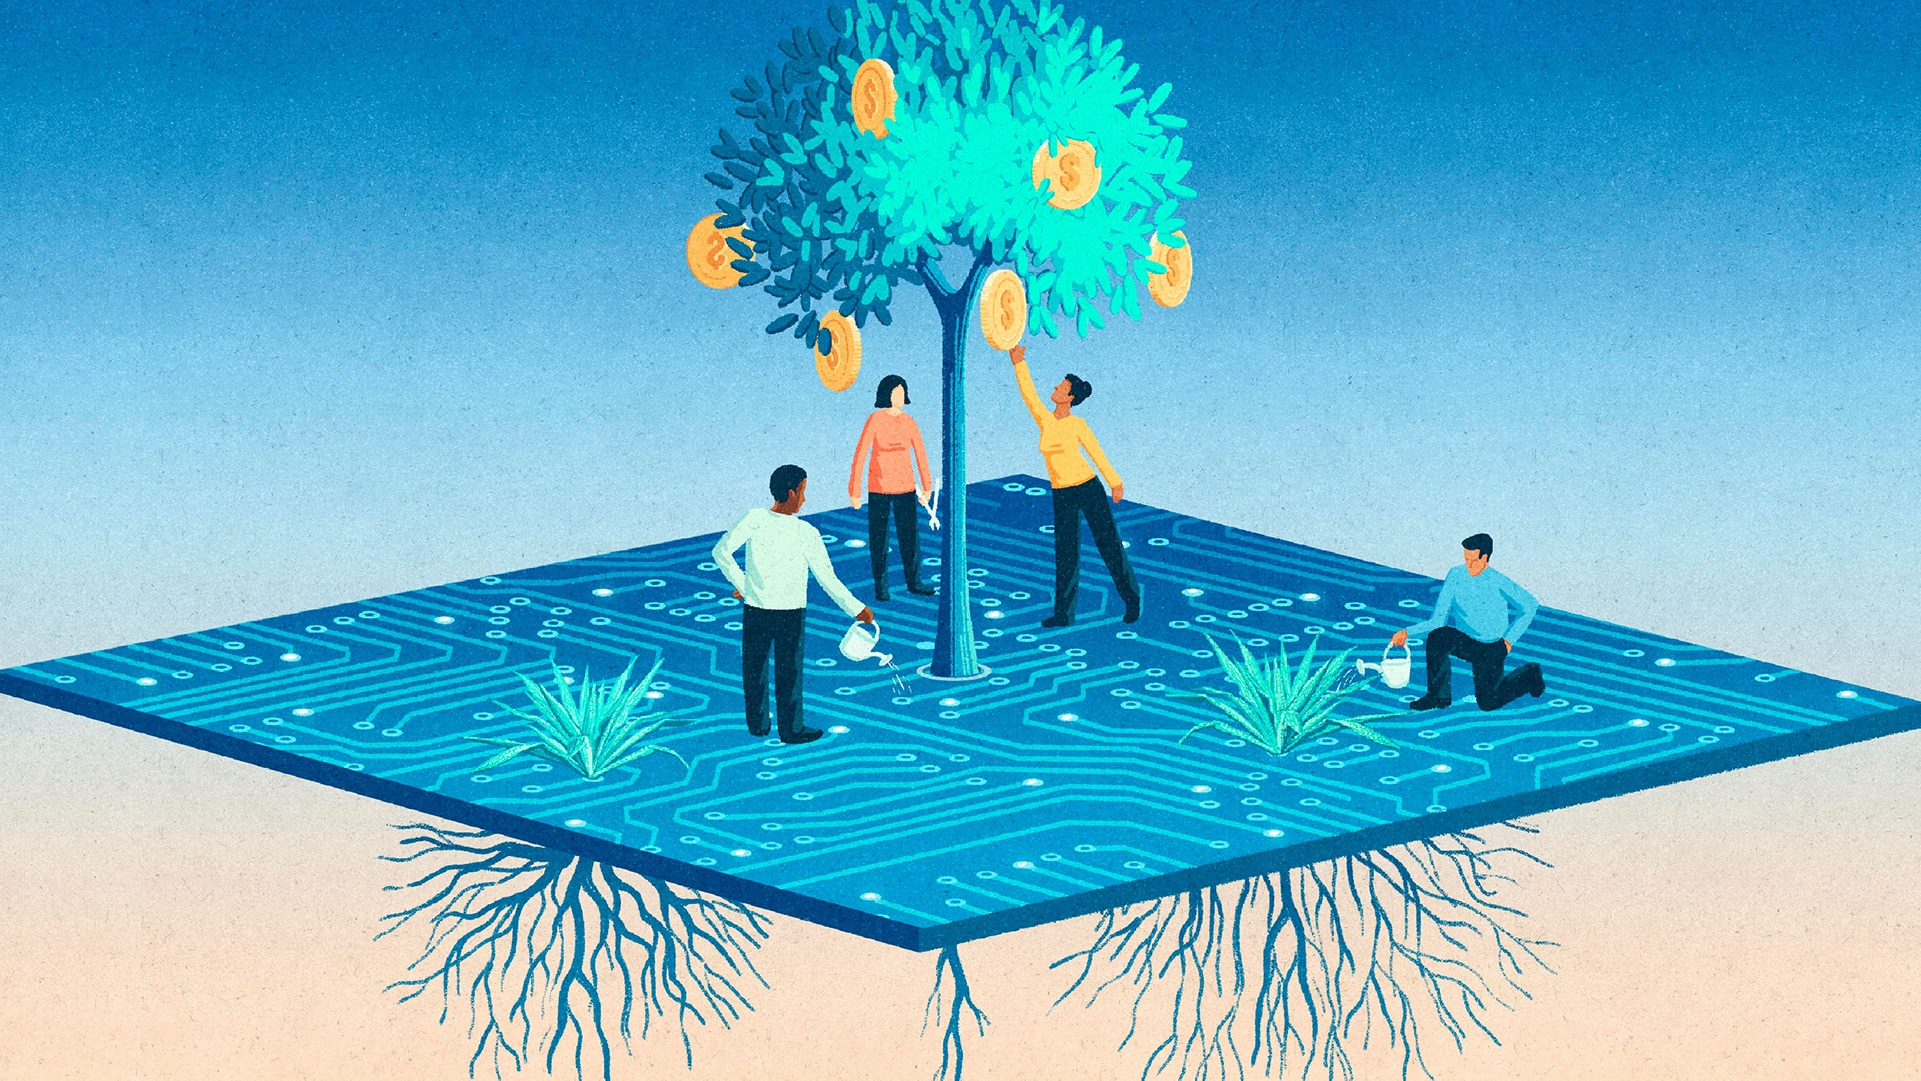 Illustration of people standing on a computer chip. Most of them are standing under a fast-growing money tree with poor roots, while one person waters a slow-growing plant with a strong root system.